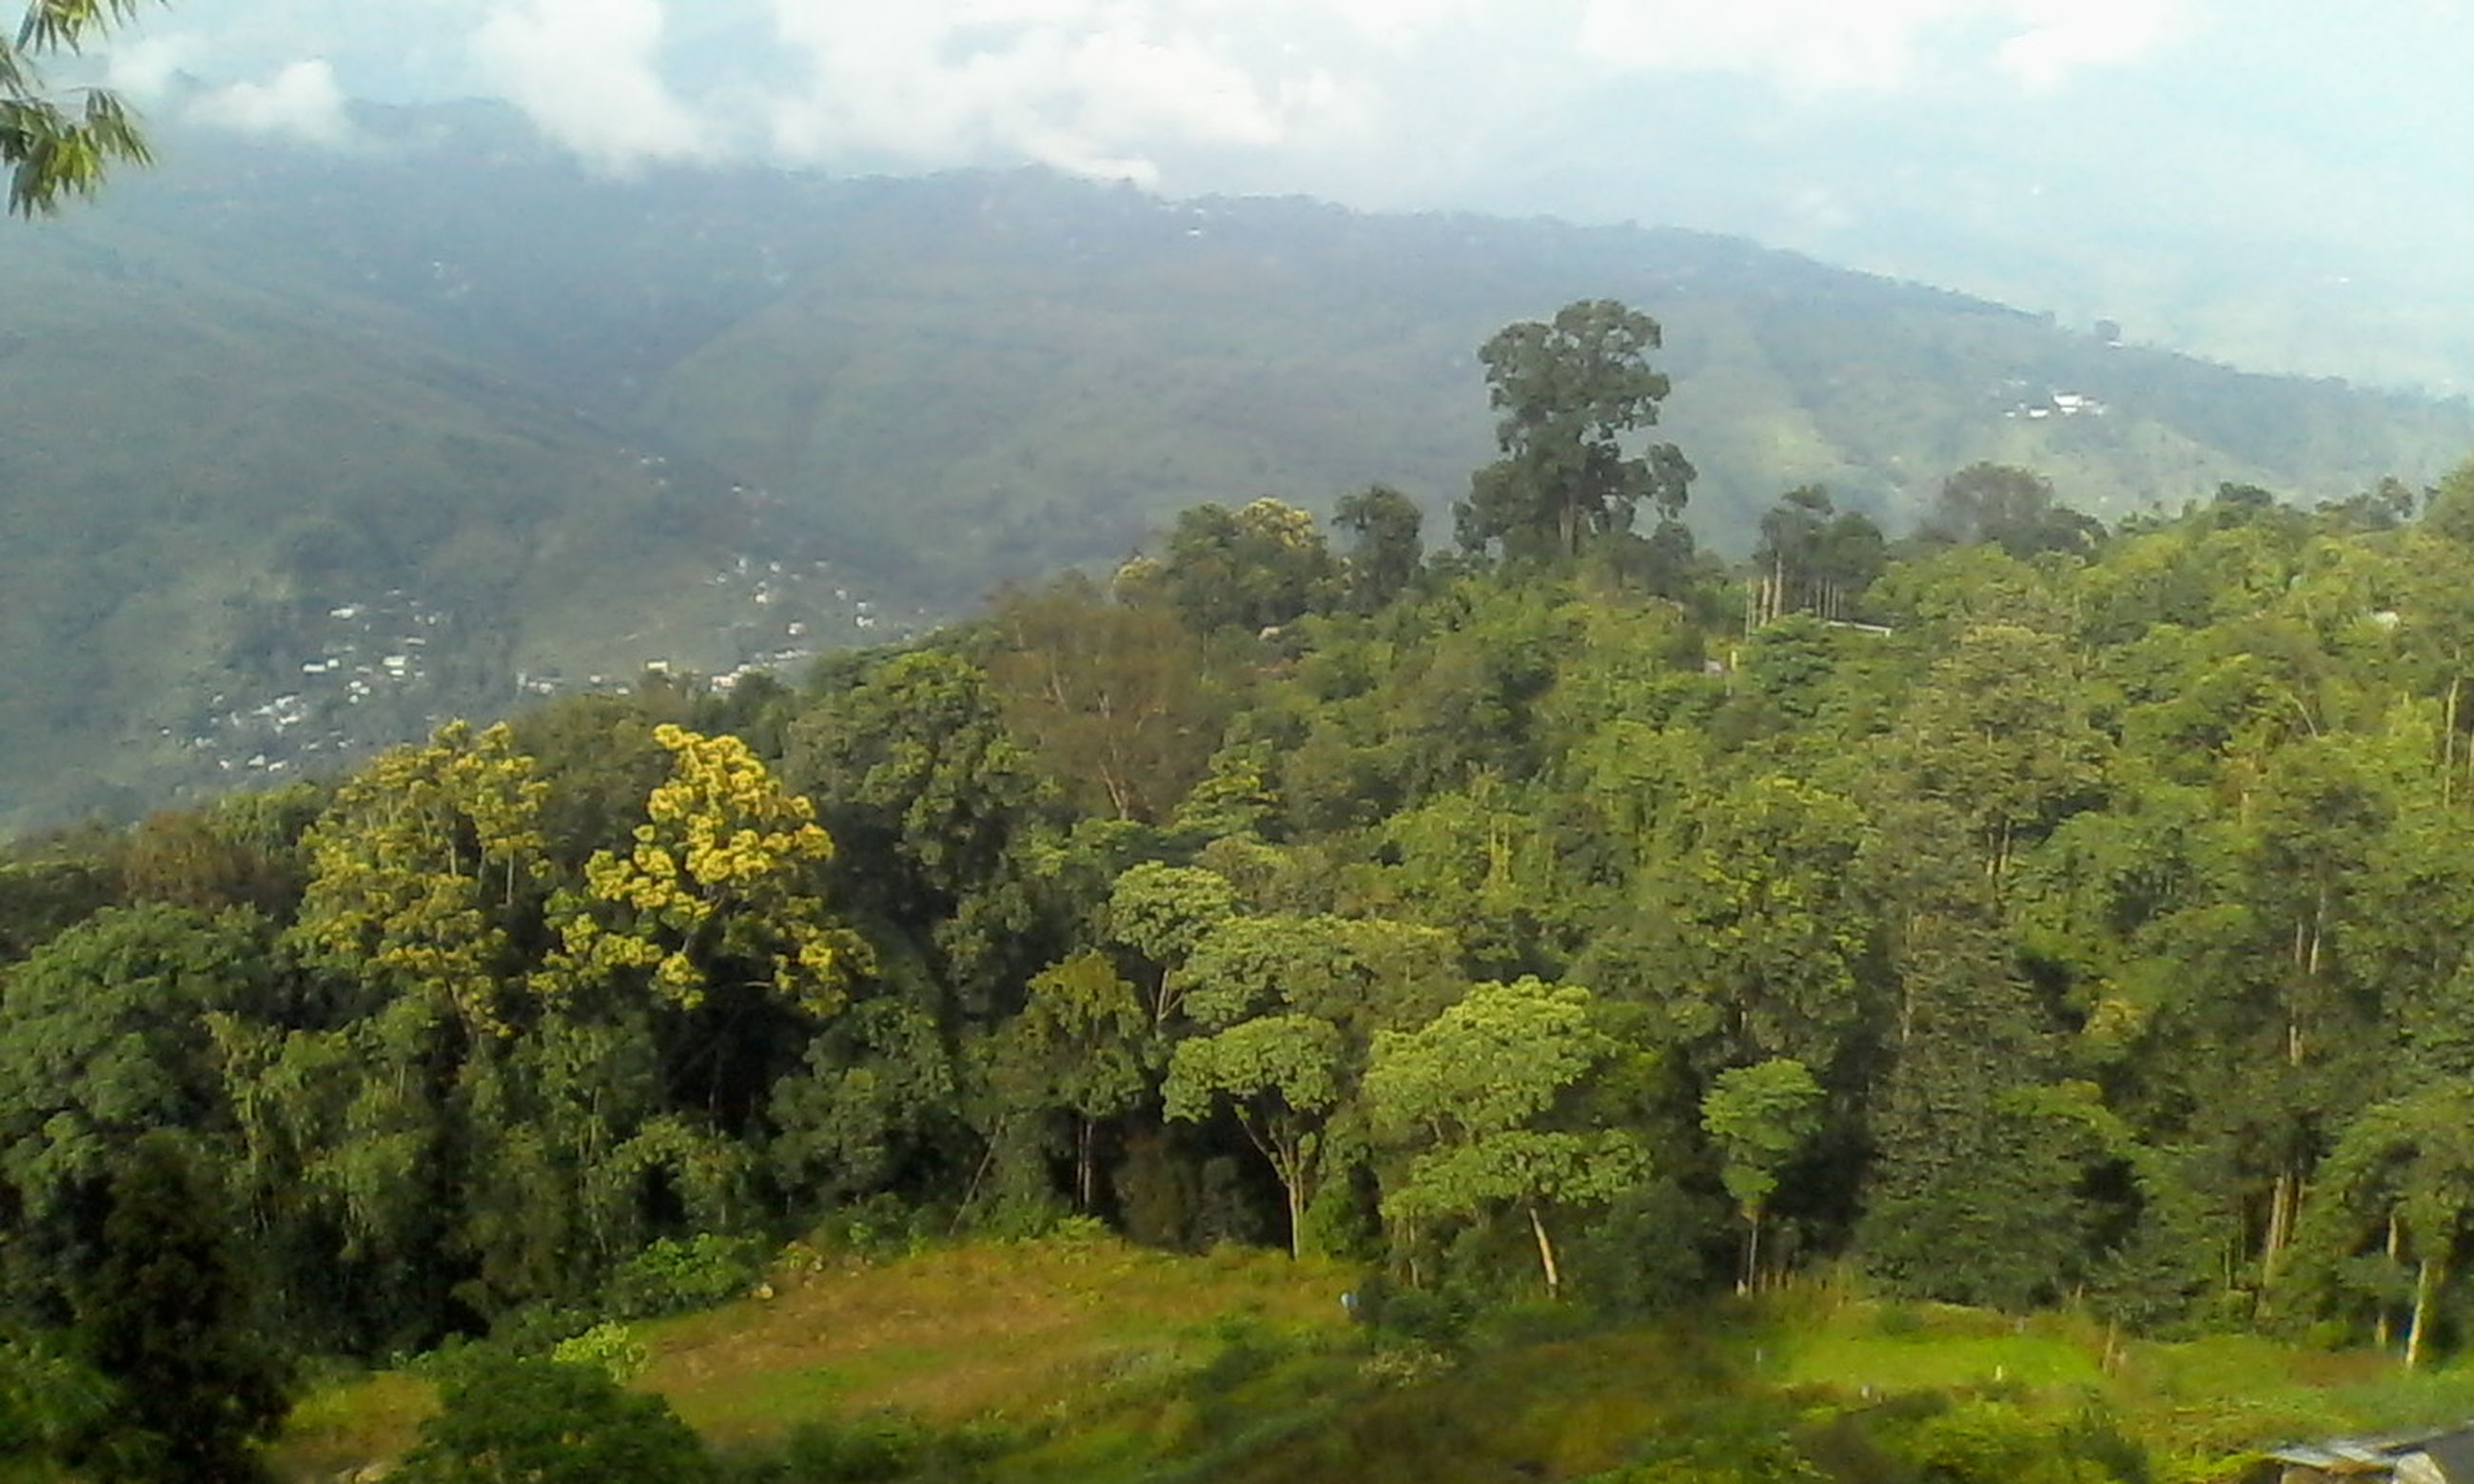 plant, tree, environment, forest, landscape, scenics - nature, land, vegetation, beauty in nature, mountain, nature, valley, natural environment, rainforest, green, hill station, jungle, growth, tranquility, wilderness, fog, no people, sky, field, ridge, lush foliage, foliage, mountain range, rural scene, outdoors, tranquil scene, non-urban scene, agriculture, day, plateau, tropical climate, cloud, travel, plantation, social issues, rural area, meadow, crop